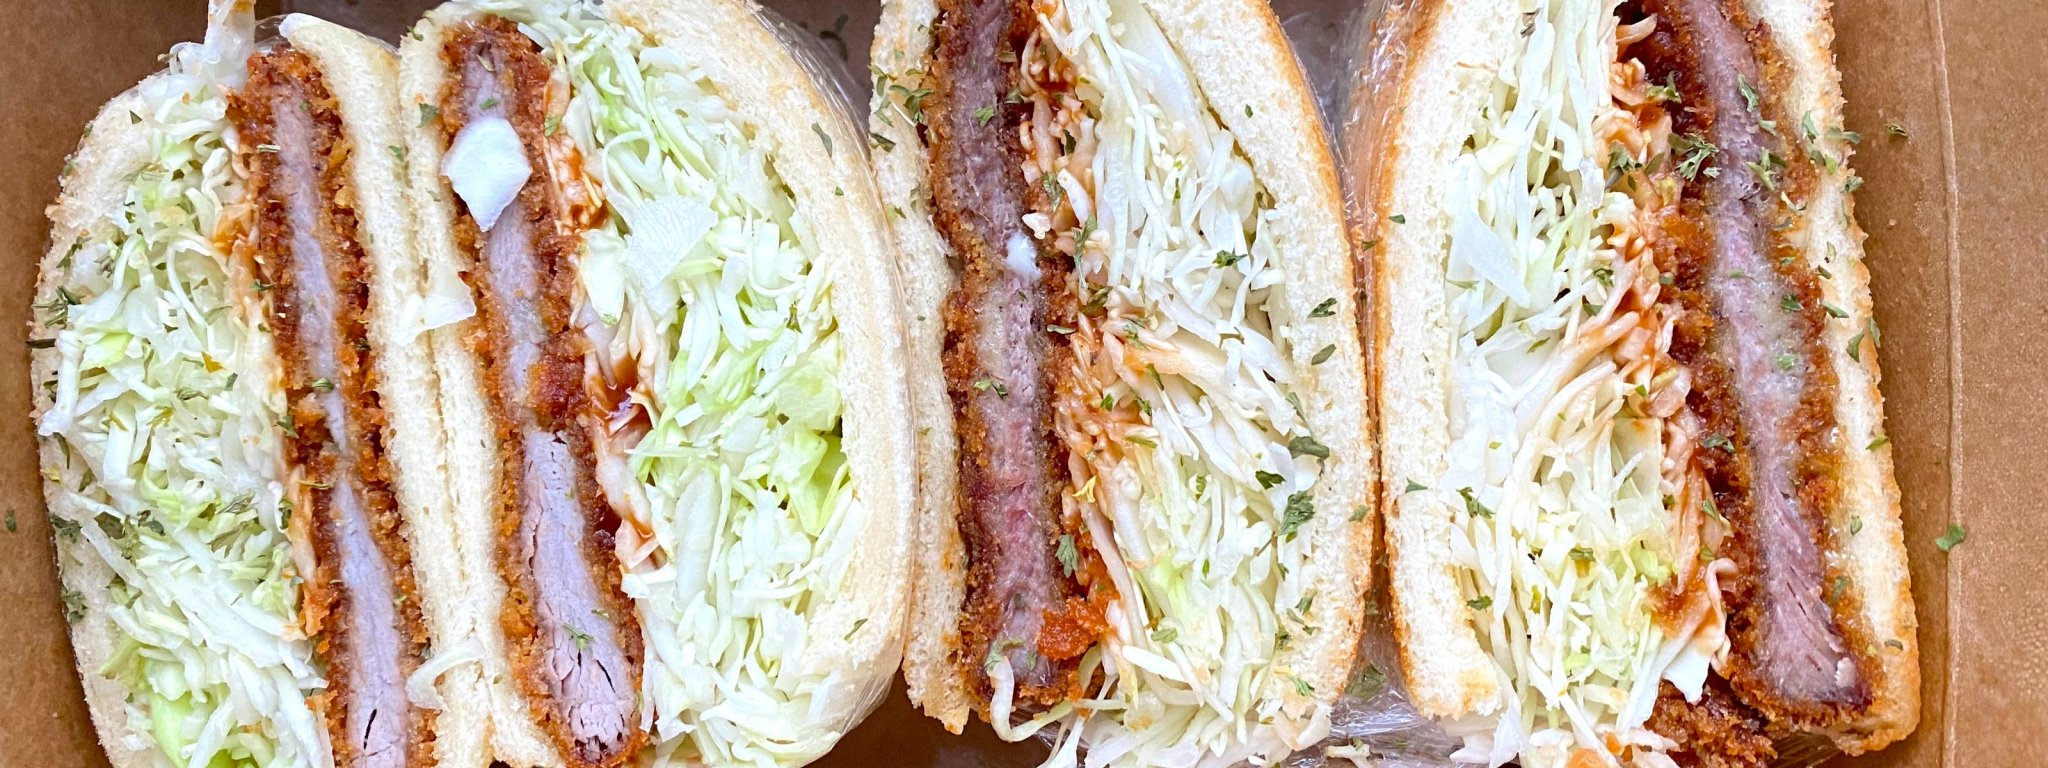 The Best New Sandwiches In NYC - New York - The Infatuation